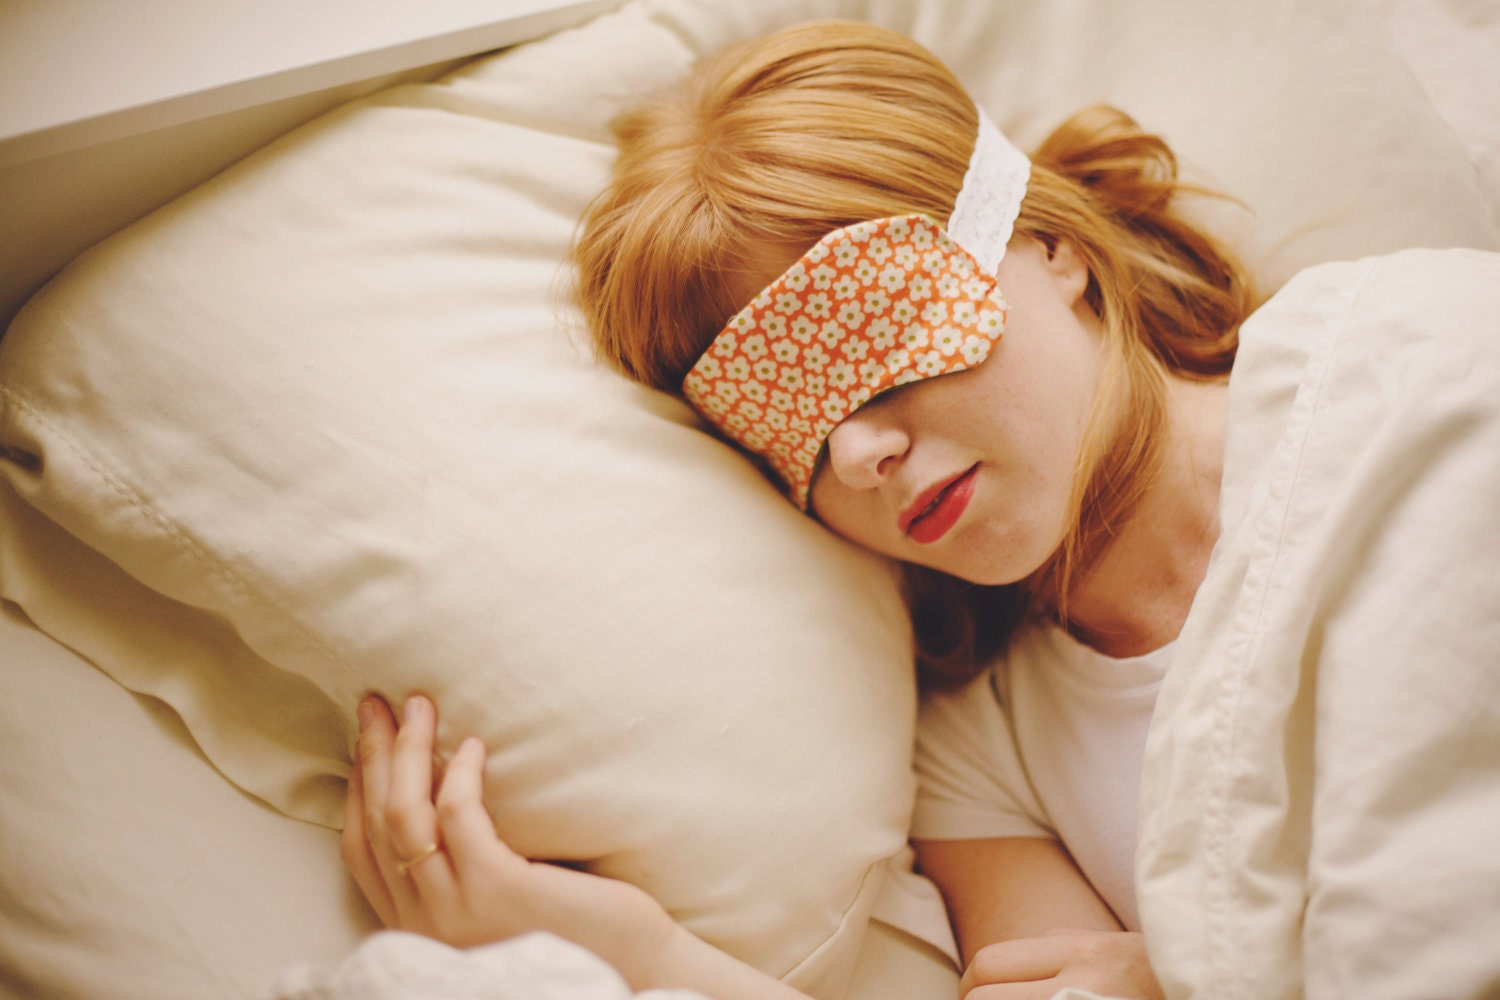 orange sleeping beauty eye mask with green flannel